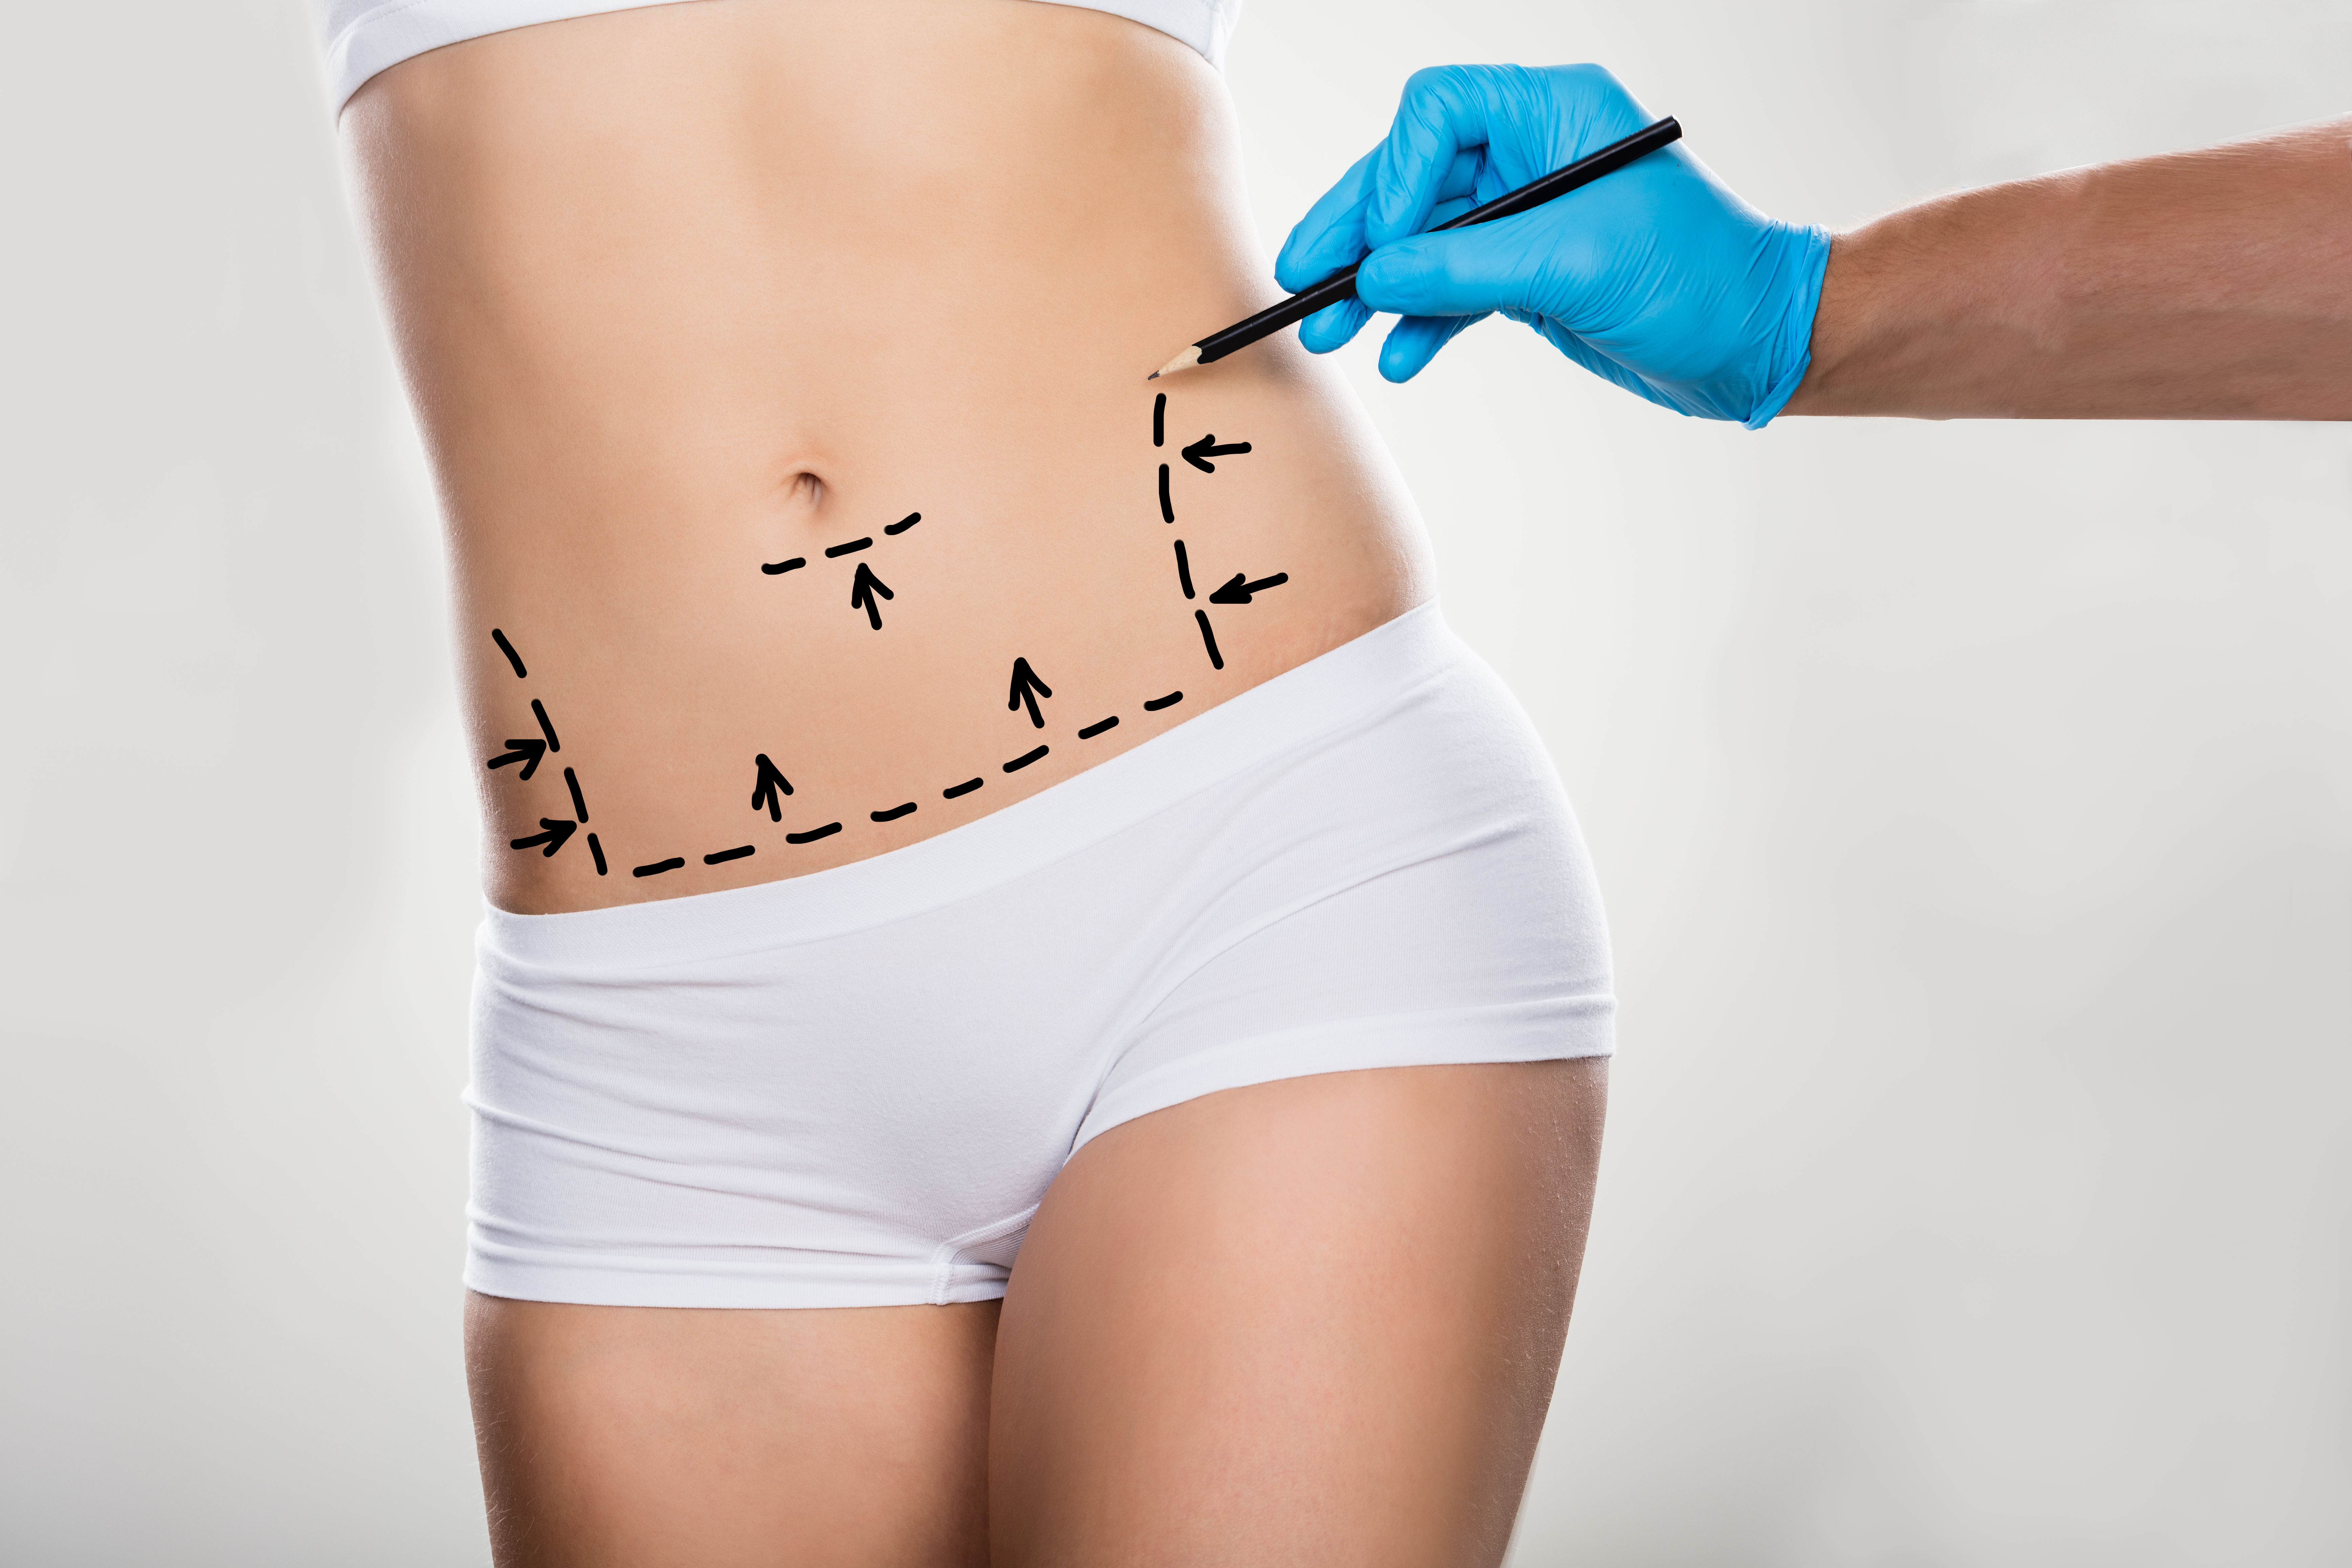 Surgeon Drawing Correction Lines On Woman's Stomach